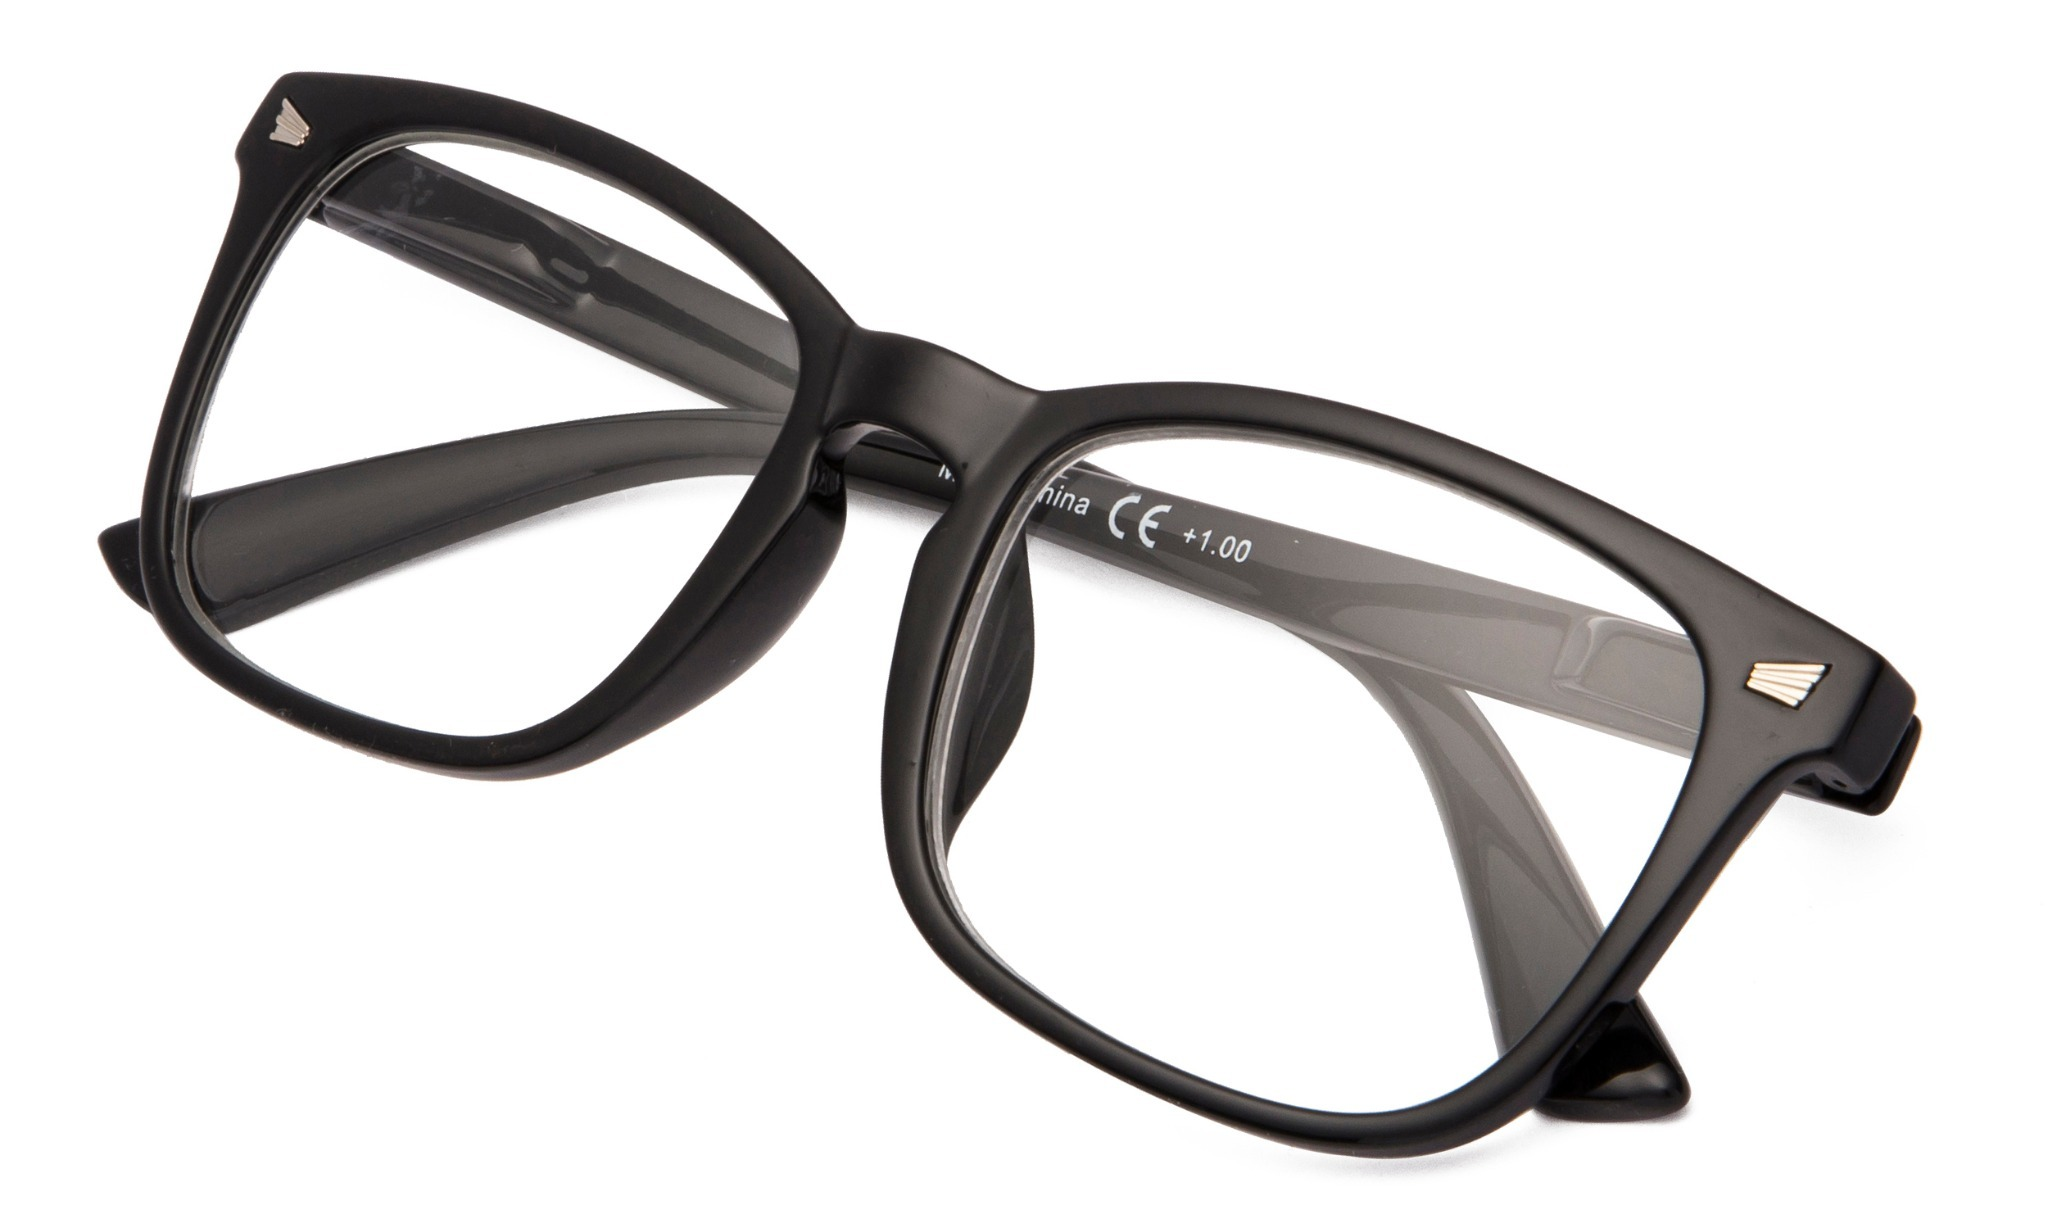 67bedc8e397a Reducblu Fashion Ladies Readers Stylish Reading Glasses Women Clear Lens  RT1801